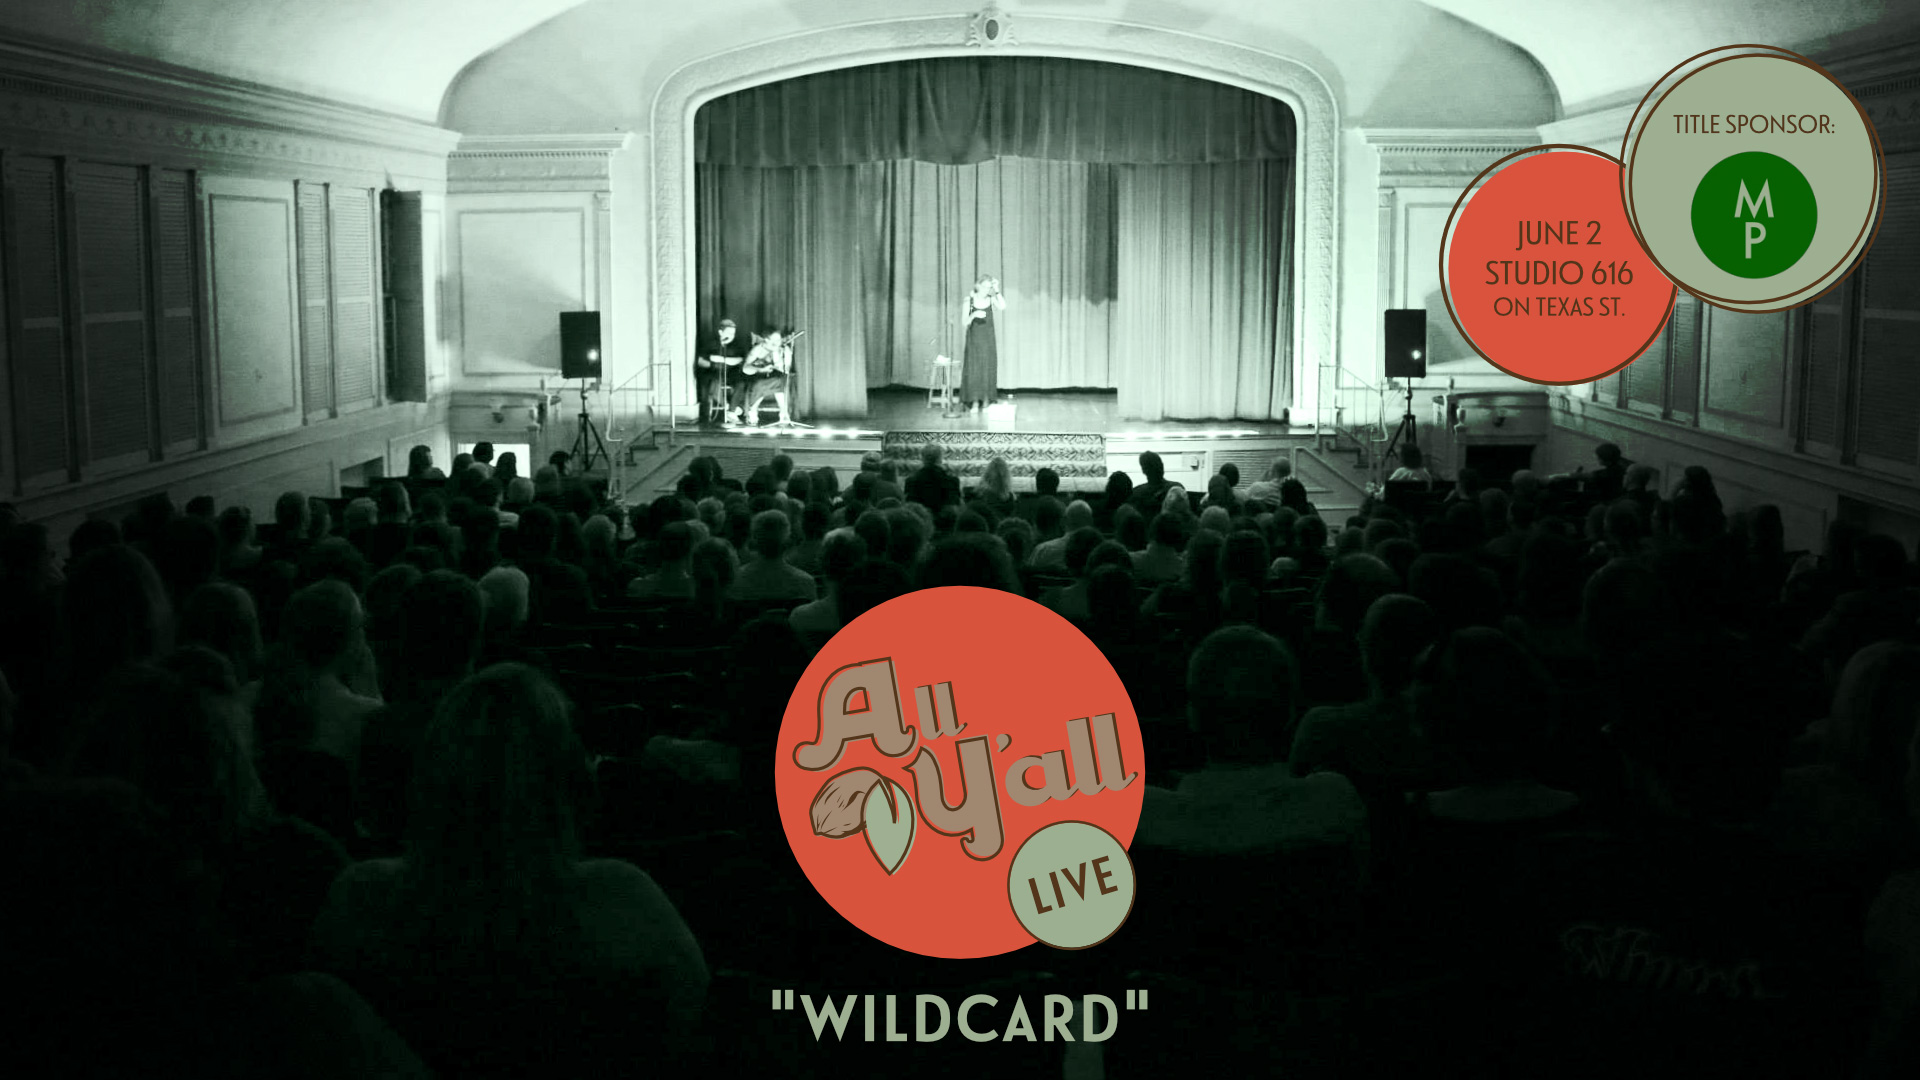 All Y'all Wildcard June 2, ...